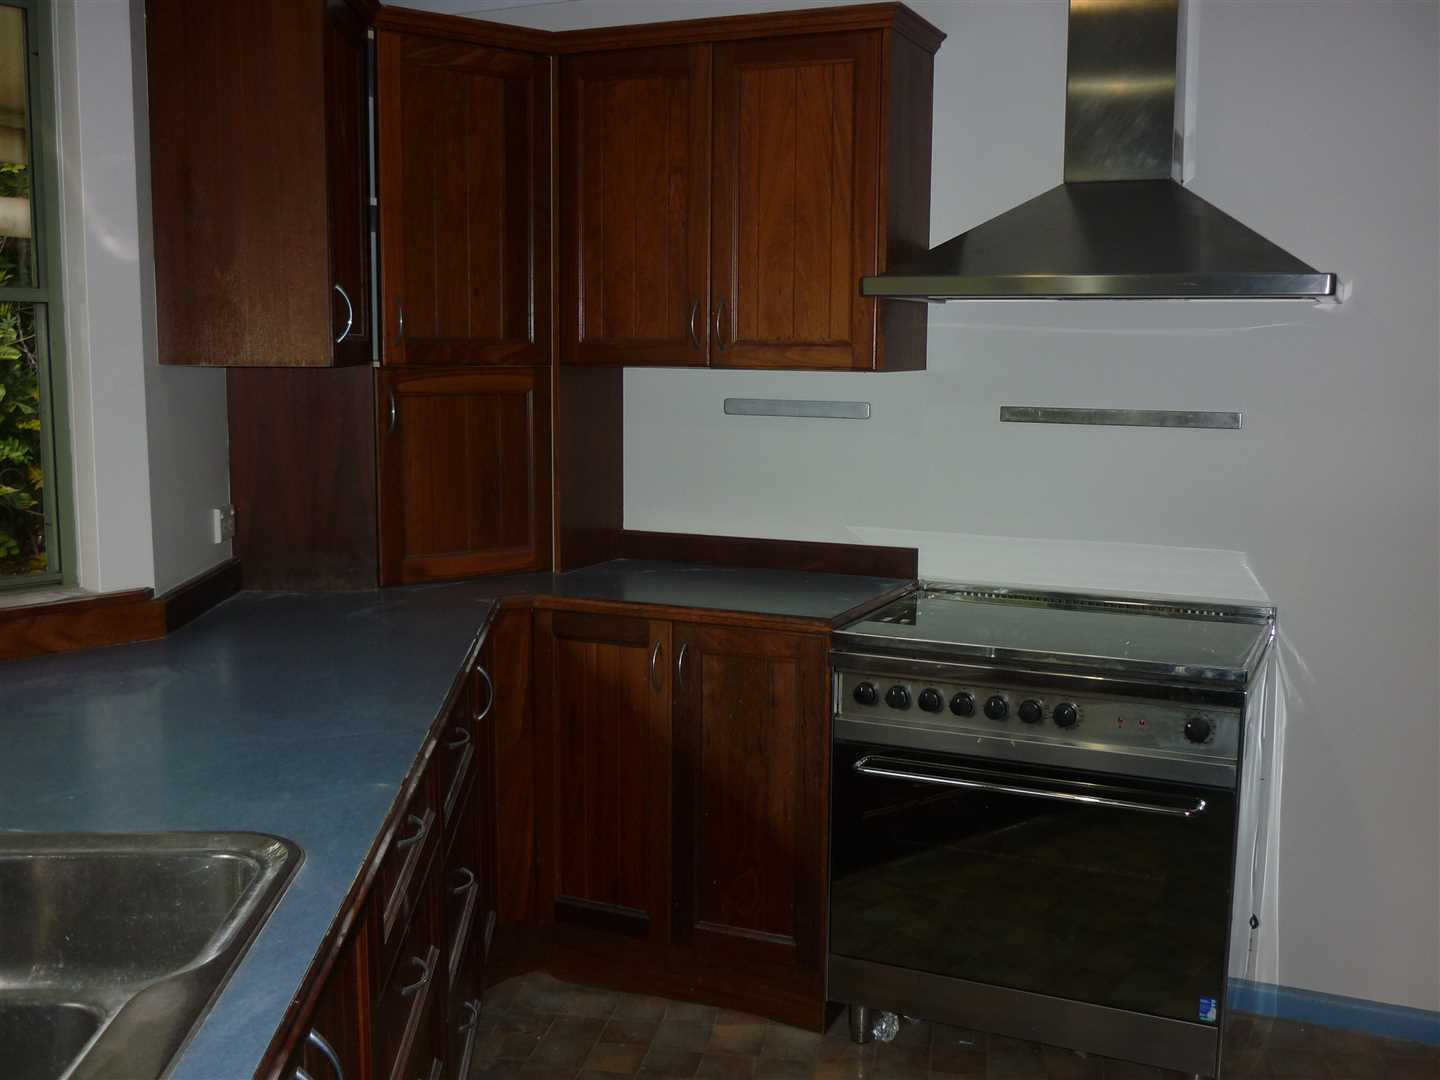 Gas cook top and oven